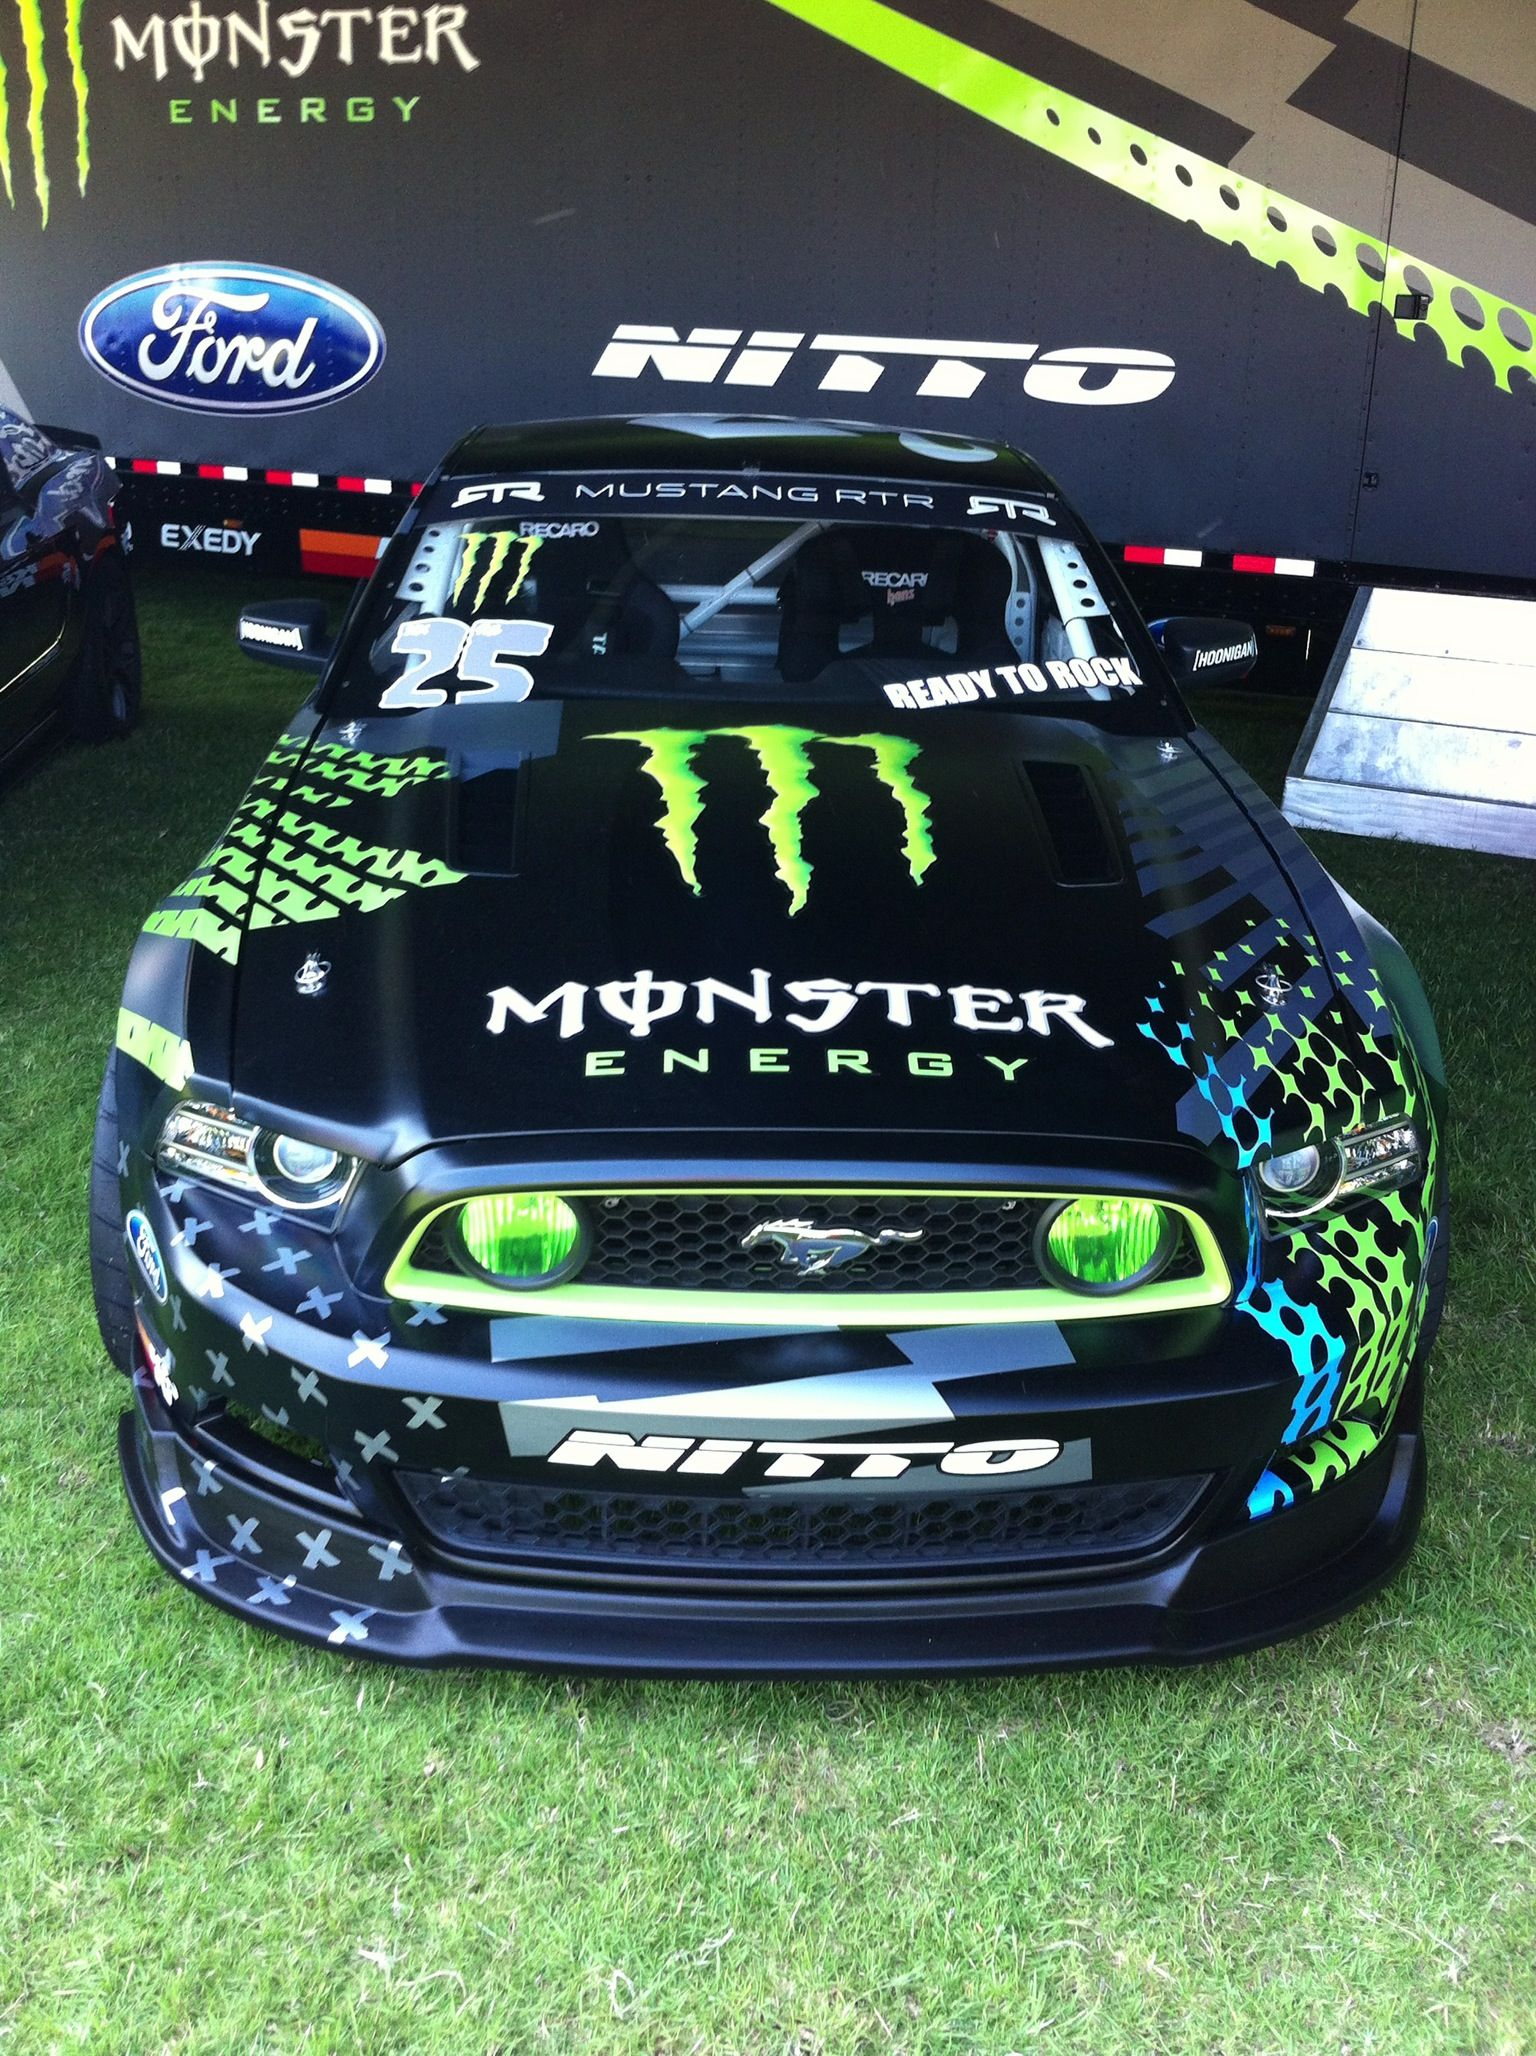 Pin By Mike Satterfield On Ford Mustang Monster Energy Sweet Cars Mustang Cars [ 2056 x 1536 Pixel ]